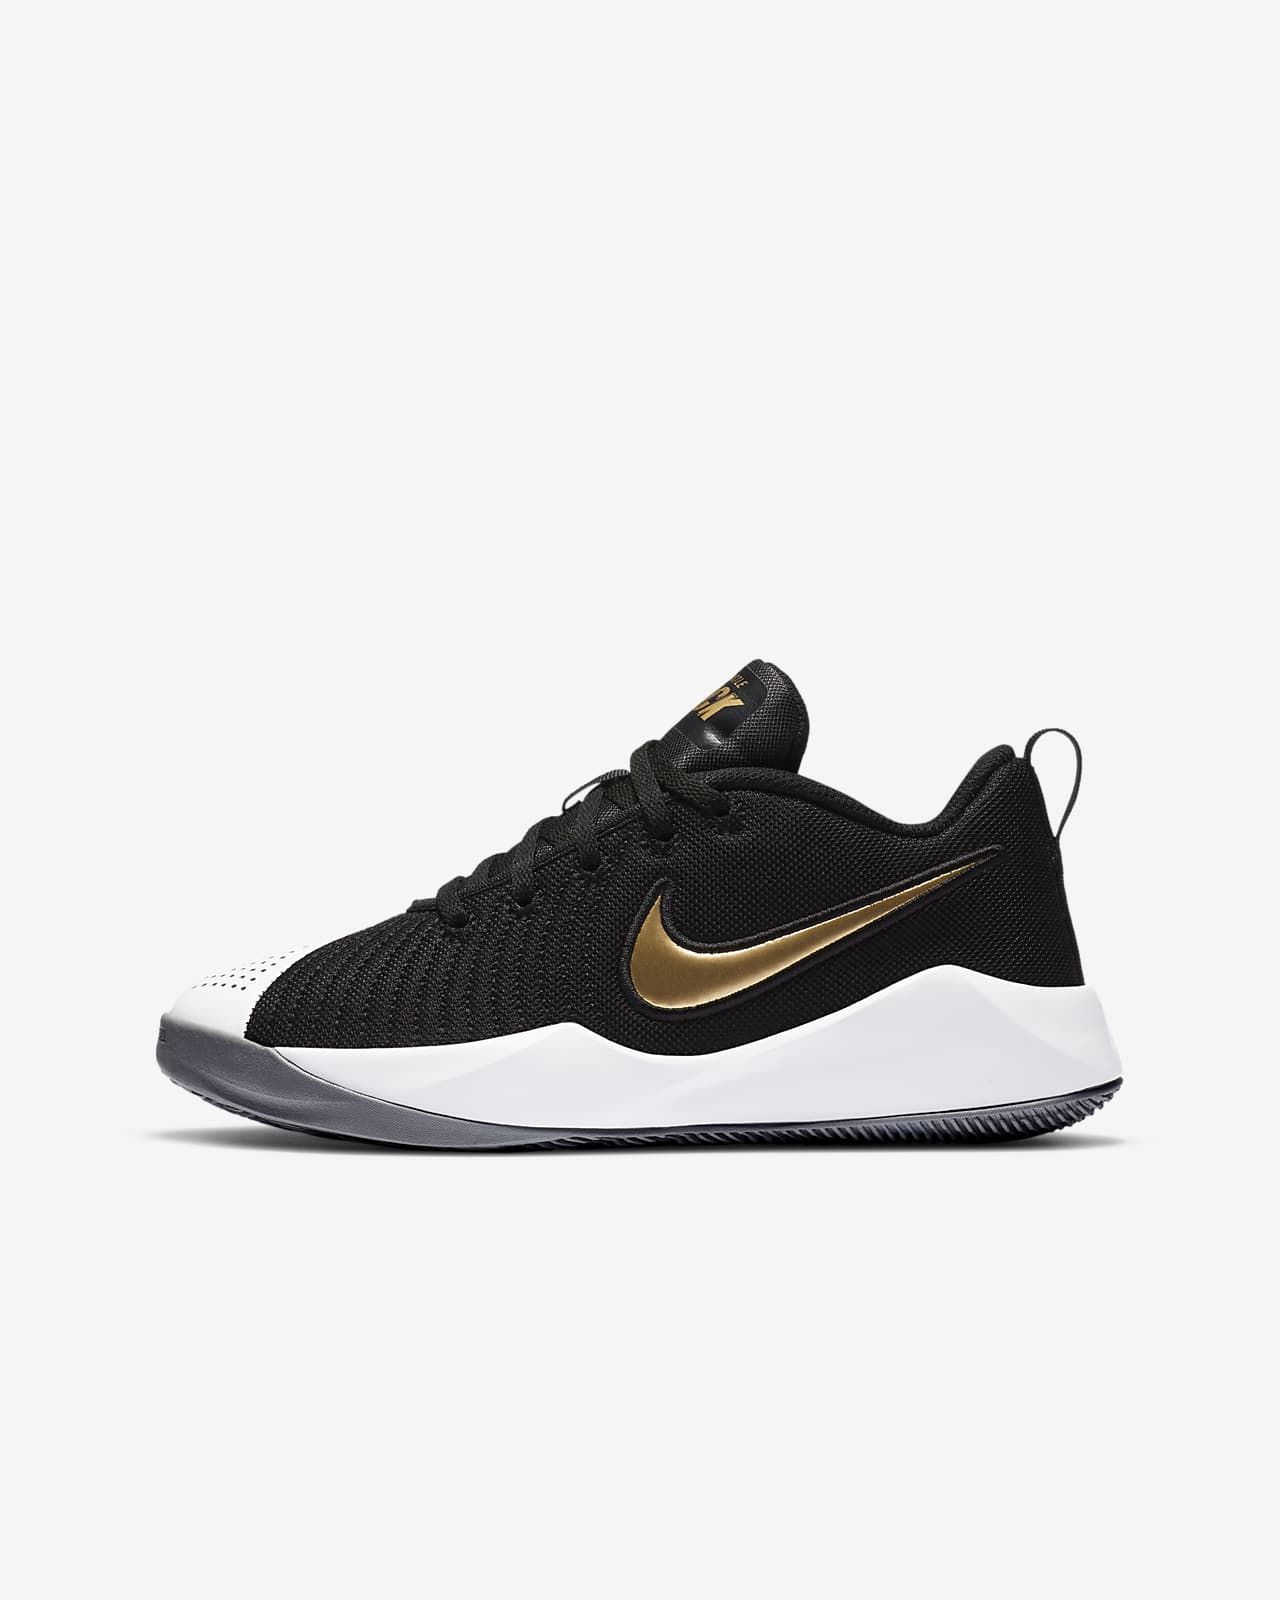 Nike Team Hustle Quick 2 Older Kids' Shoe